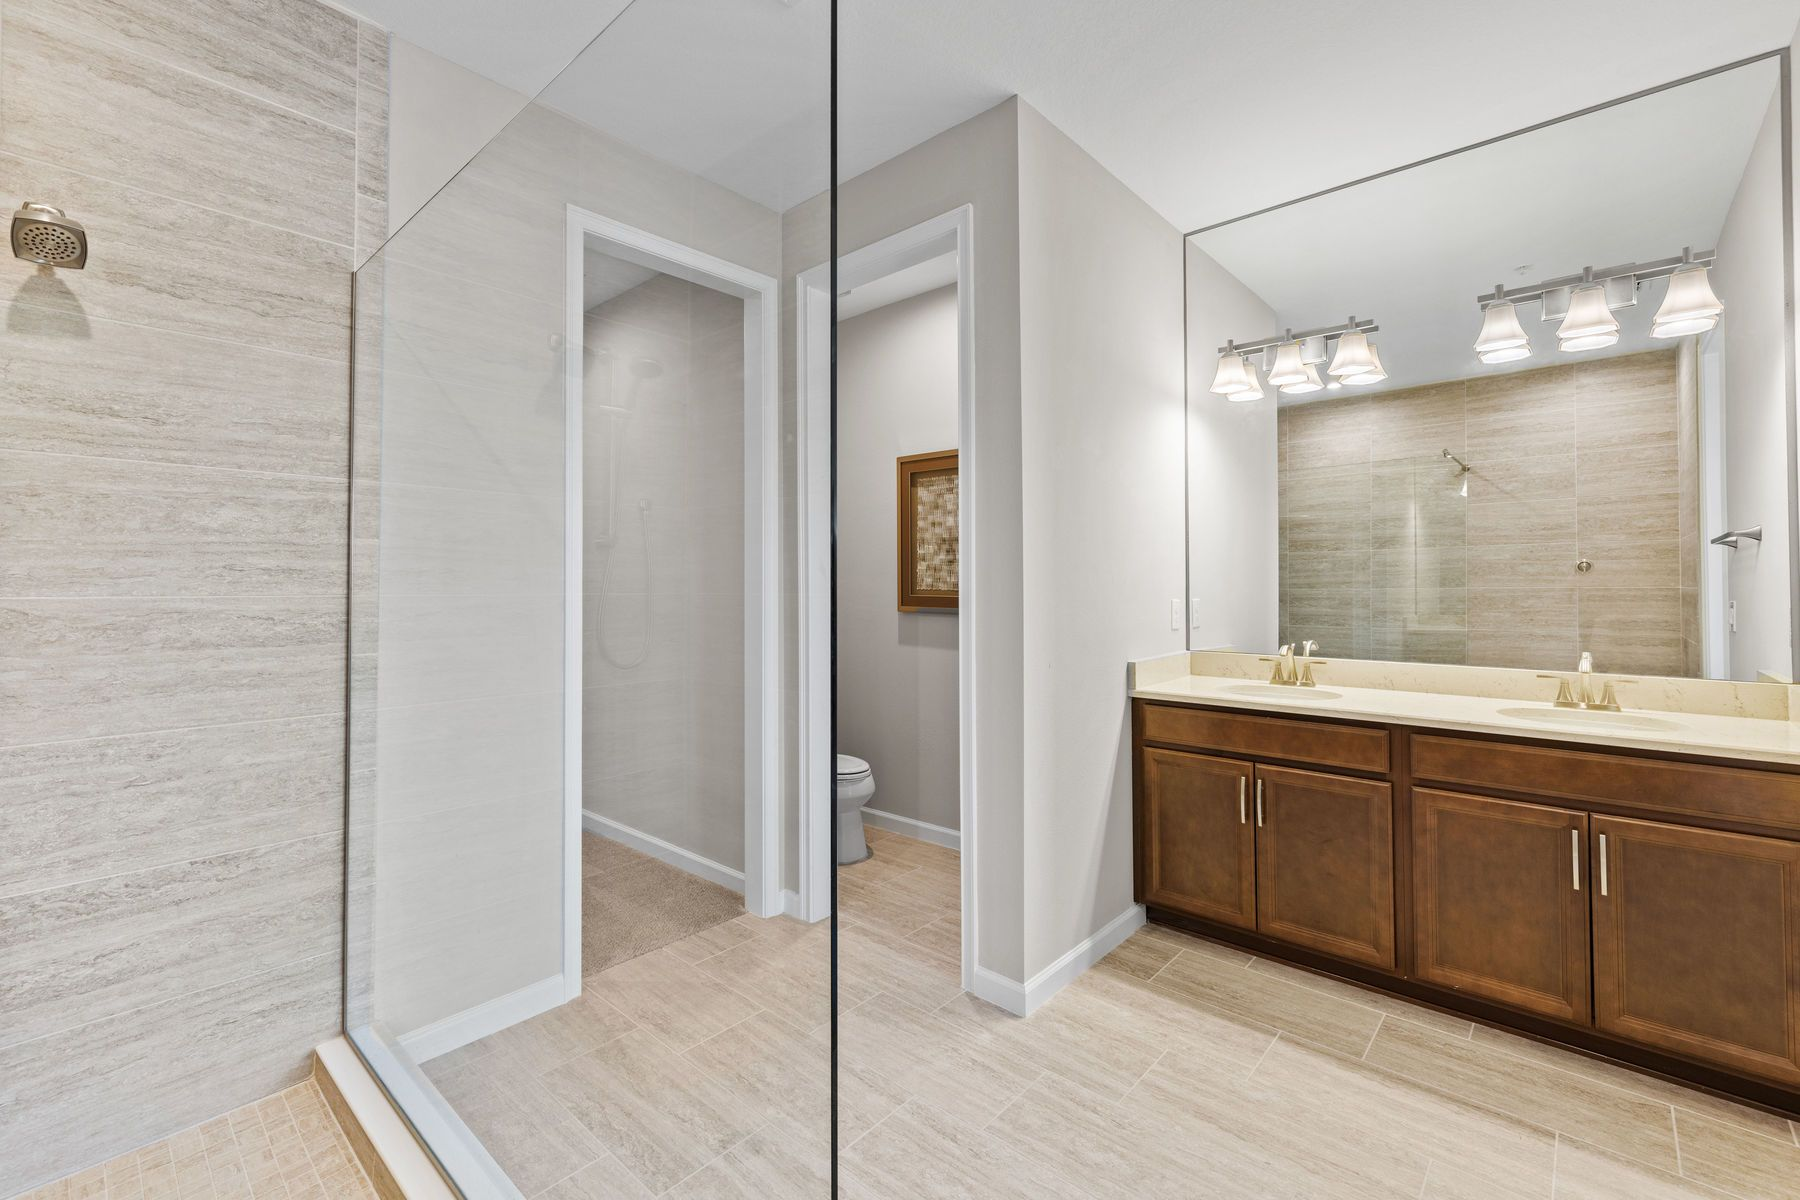 Bathroom featured in the Seabright By Mattamy Homes in Naples, FL